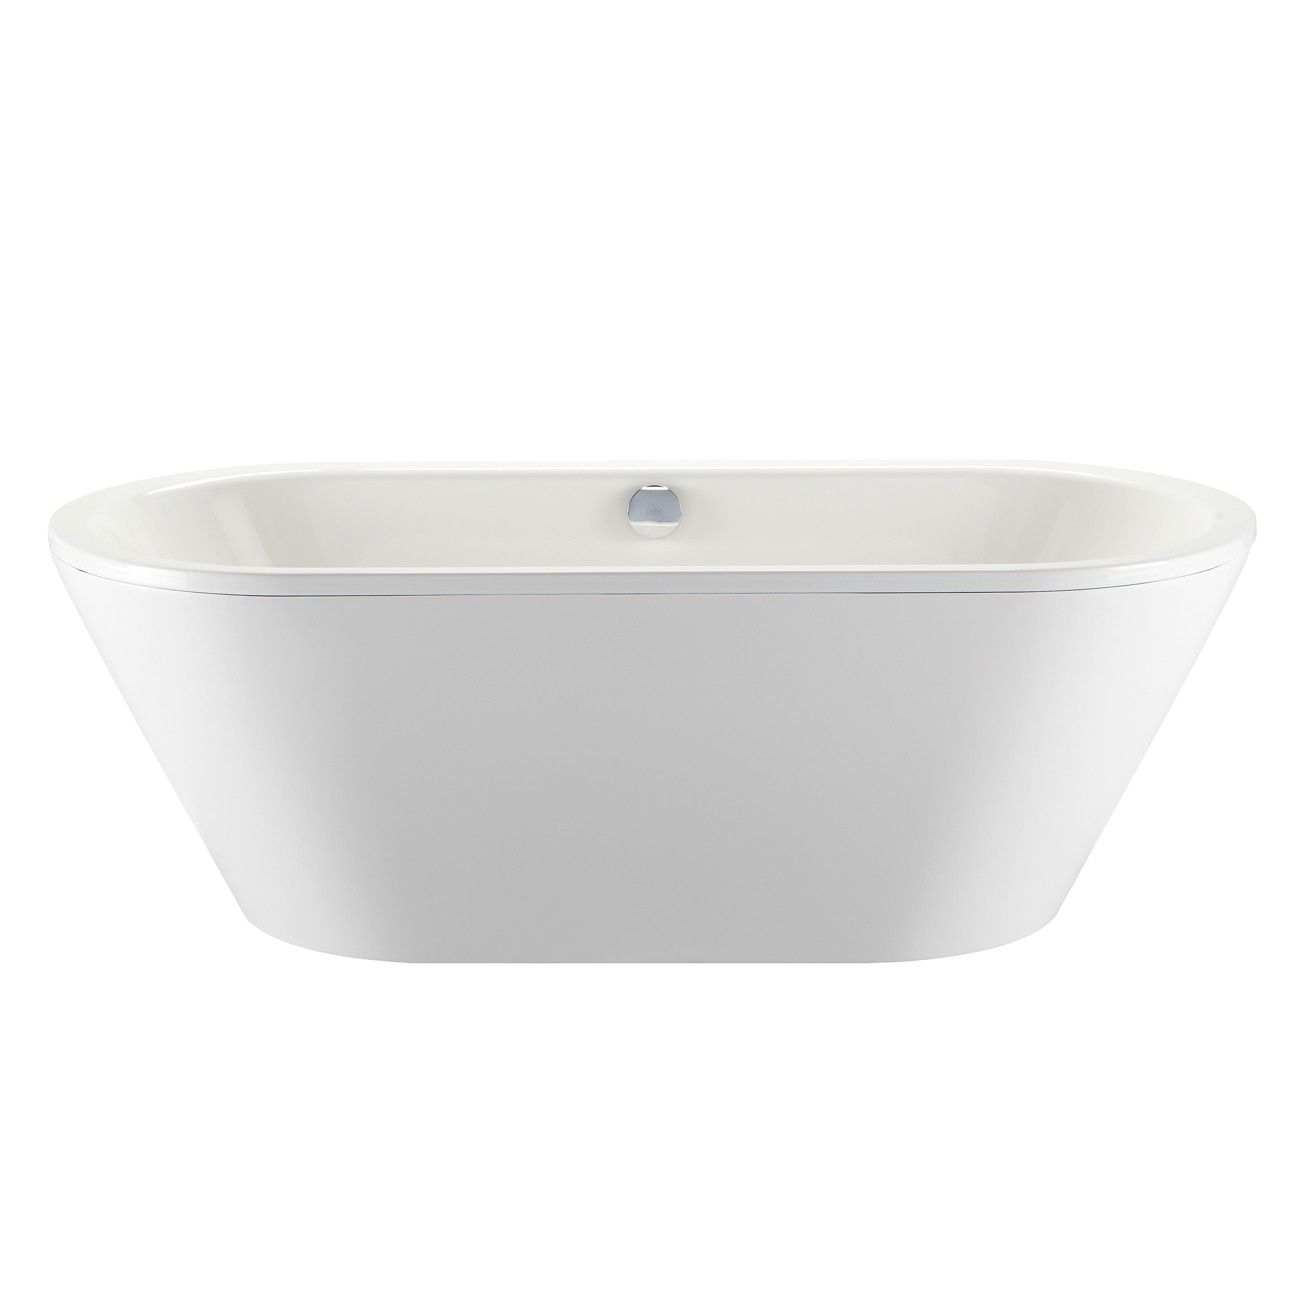 Bliss Duo Oval 1800 Built In Bath   Rogerseller